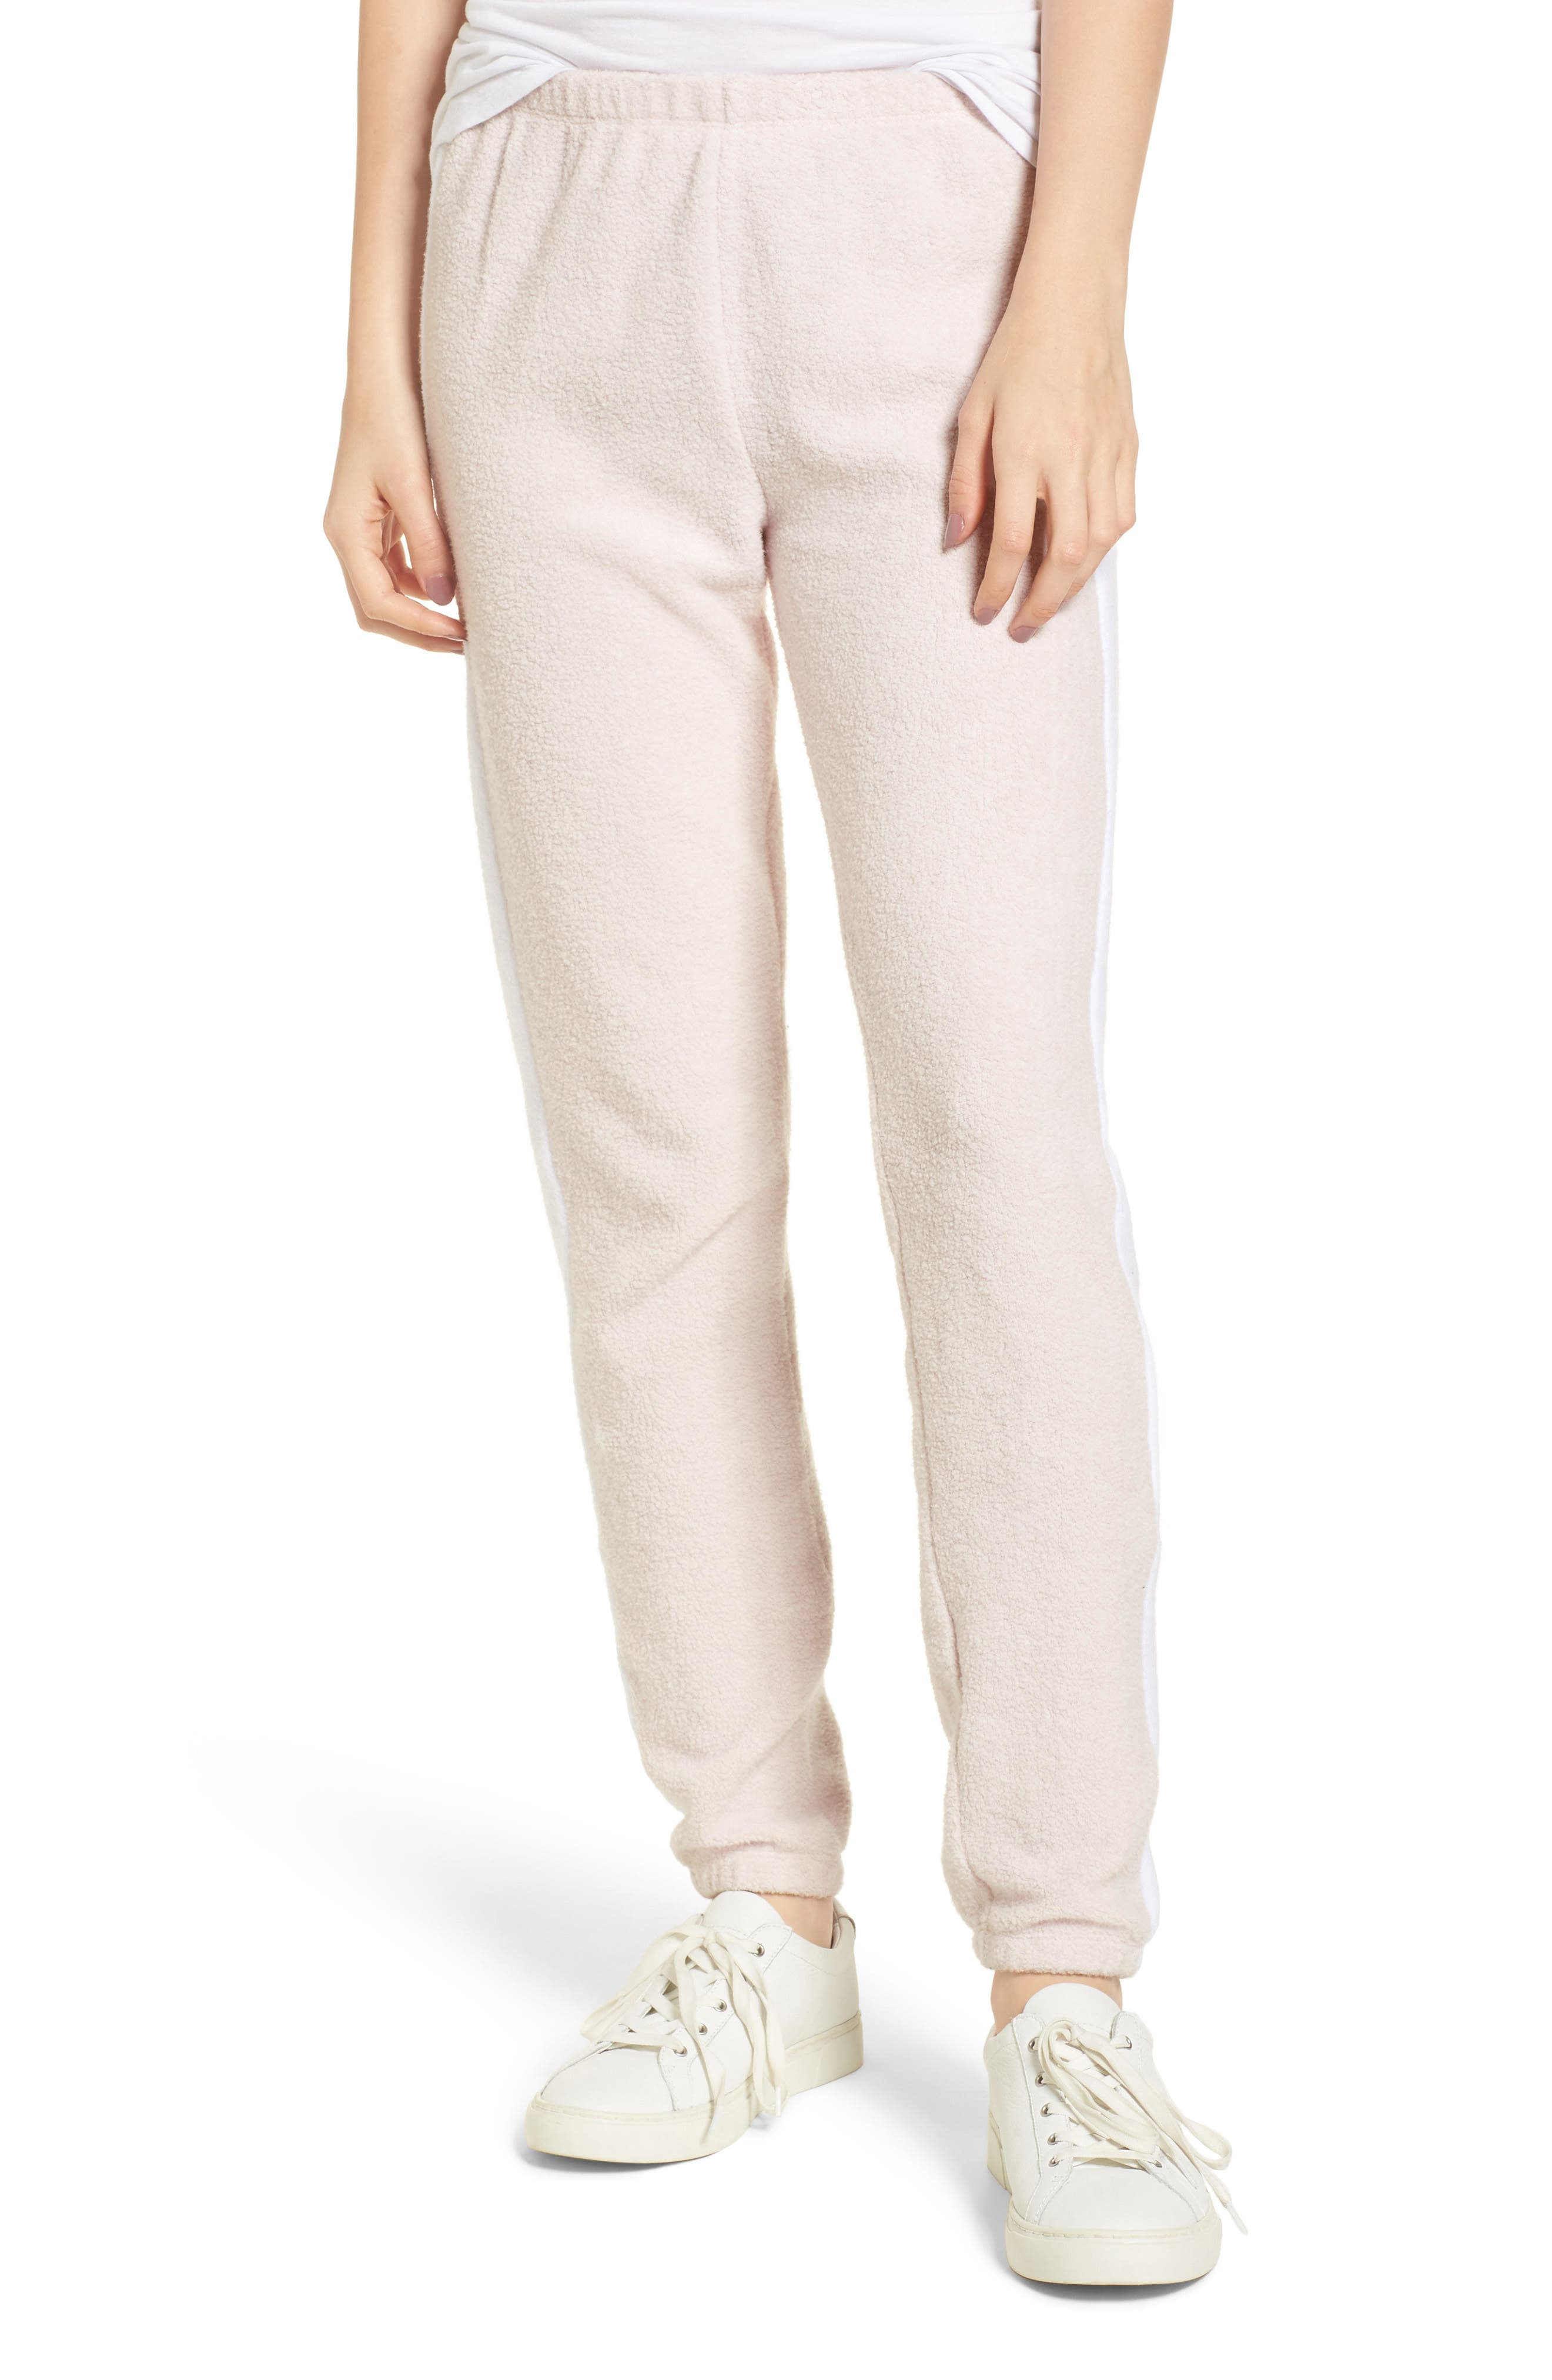 Track Star Knox Sweatpants,                         Main,                         color, 530